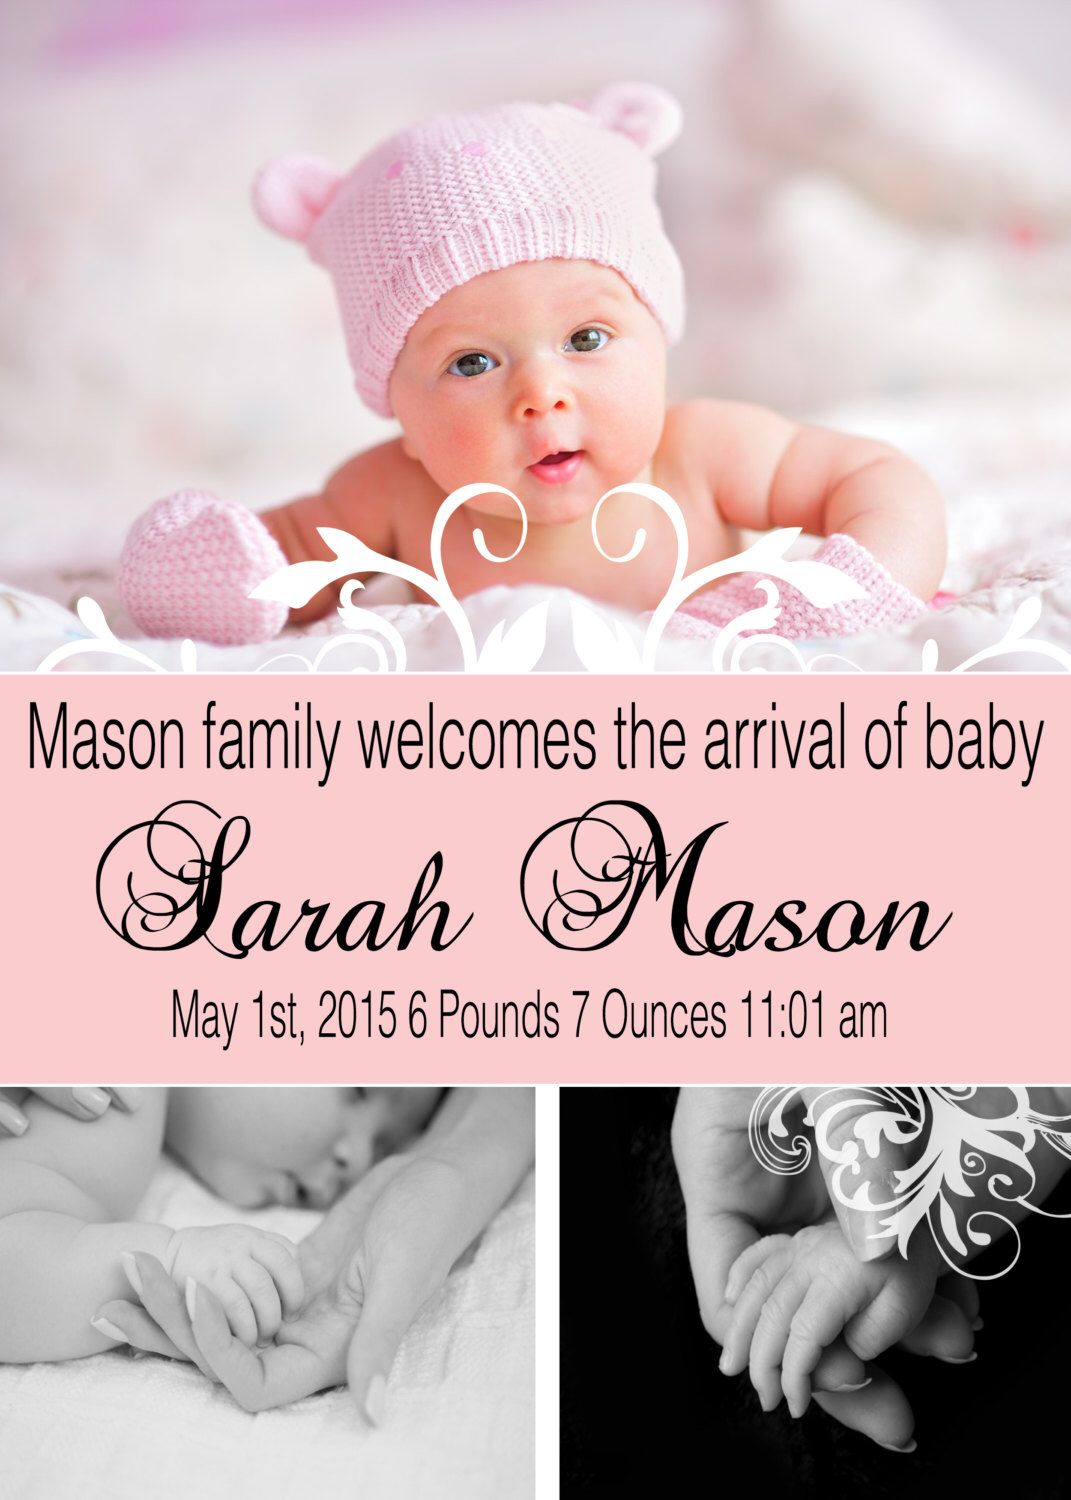 Baby Announcement - Birth Announcement - New Baby - new born announcement - Elegant baby announcement -   Pregnancy Announcement by PixelPreppers on Etsy https://www.etsy.com/listing/256440206/baby-announcement-birth-announcement-new